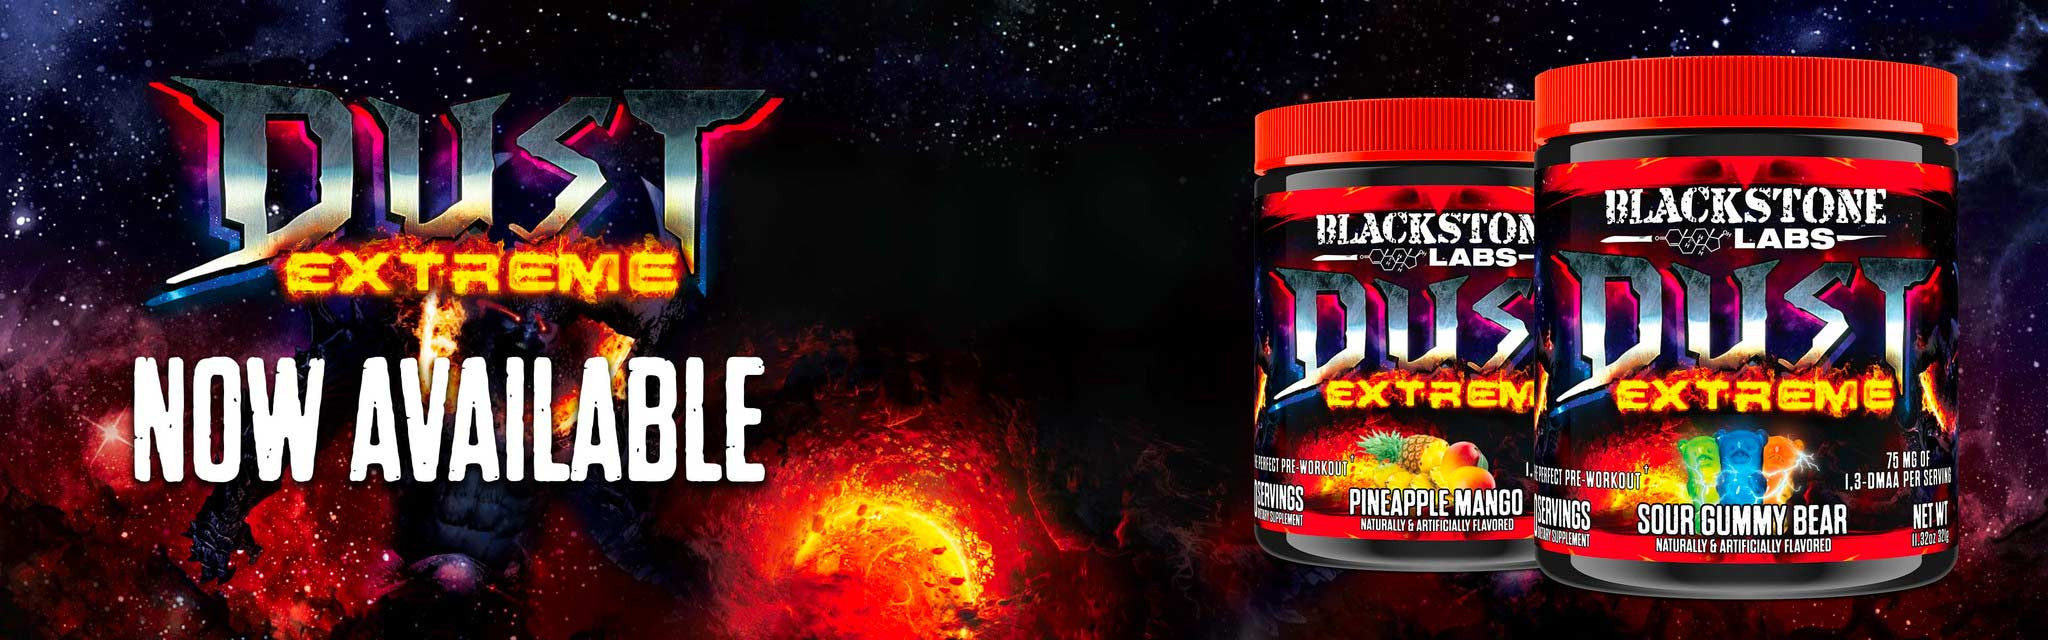 Blackstone Labs | Dust Extreme | Strongest DMAA Pre-Workout